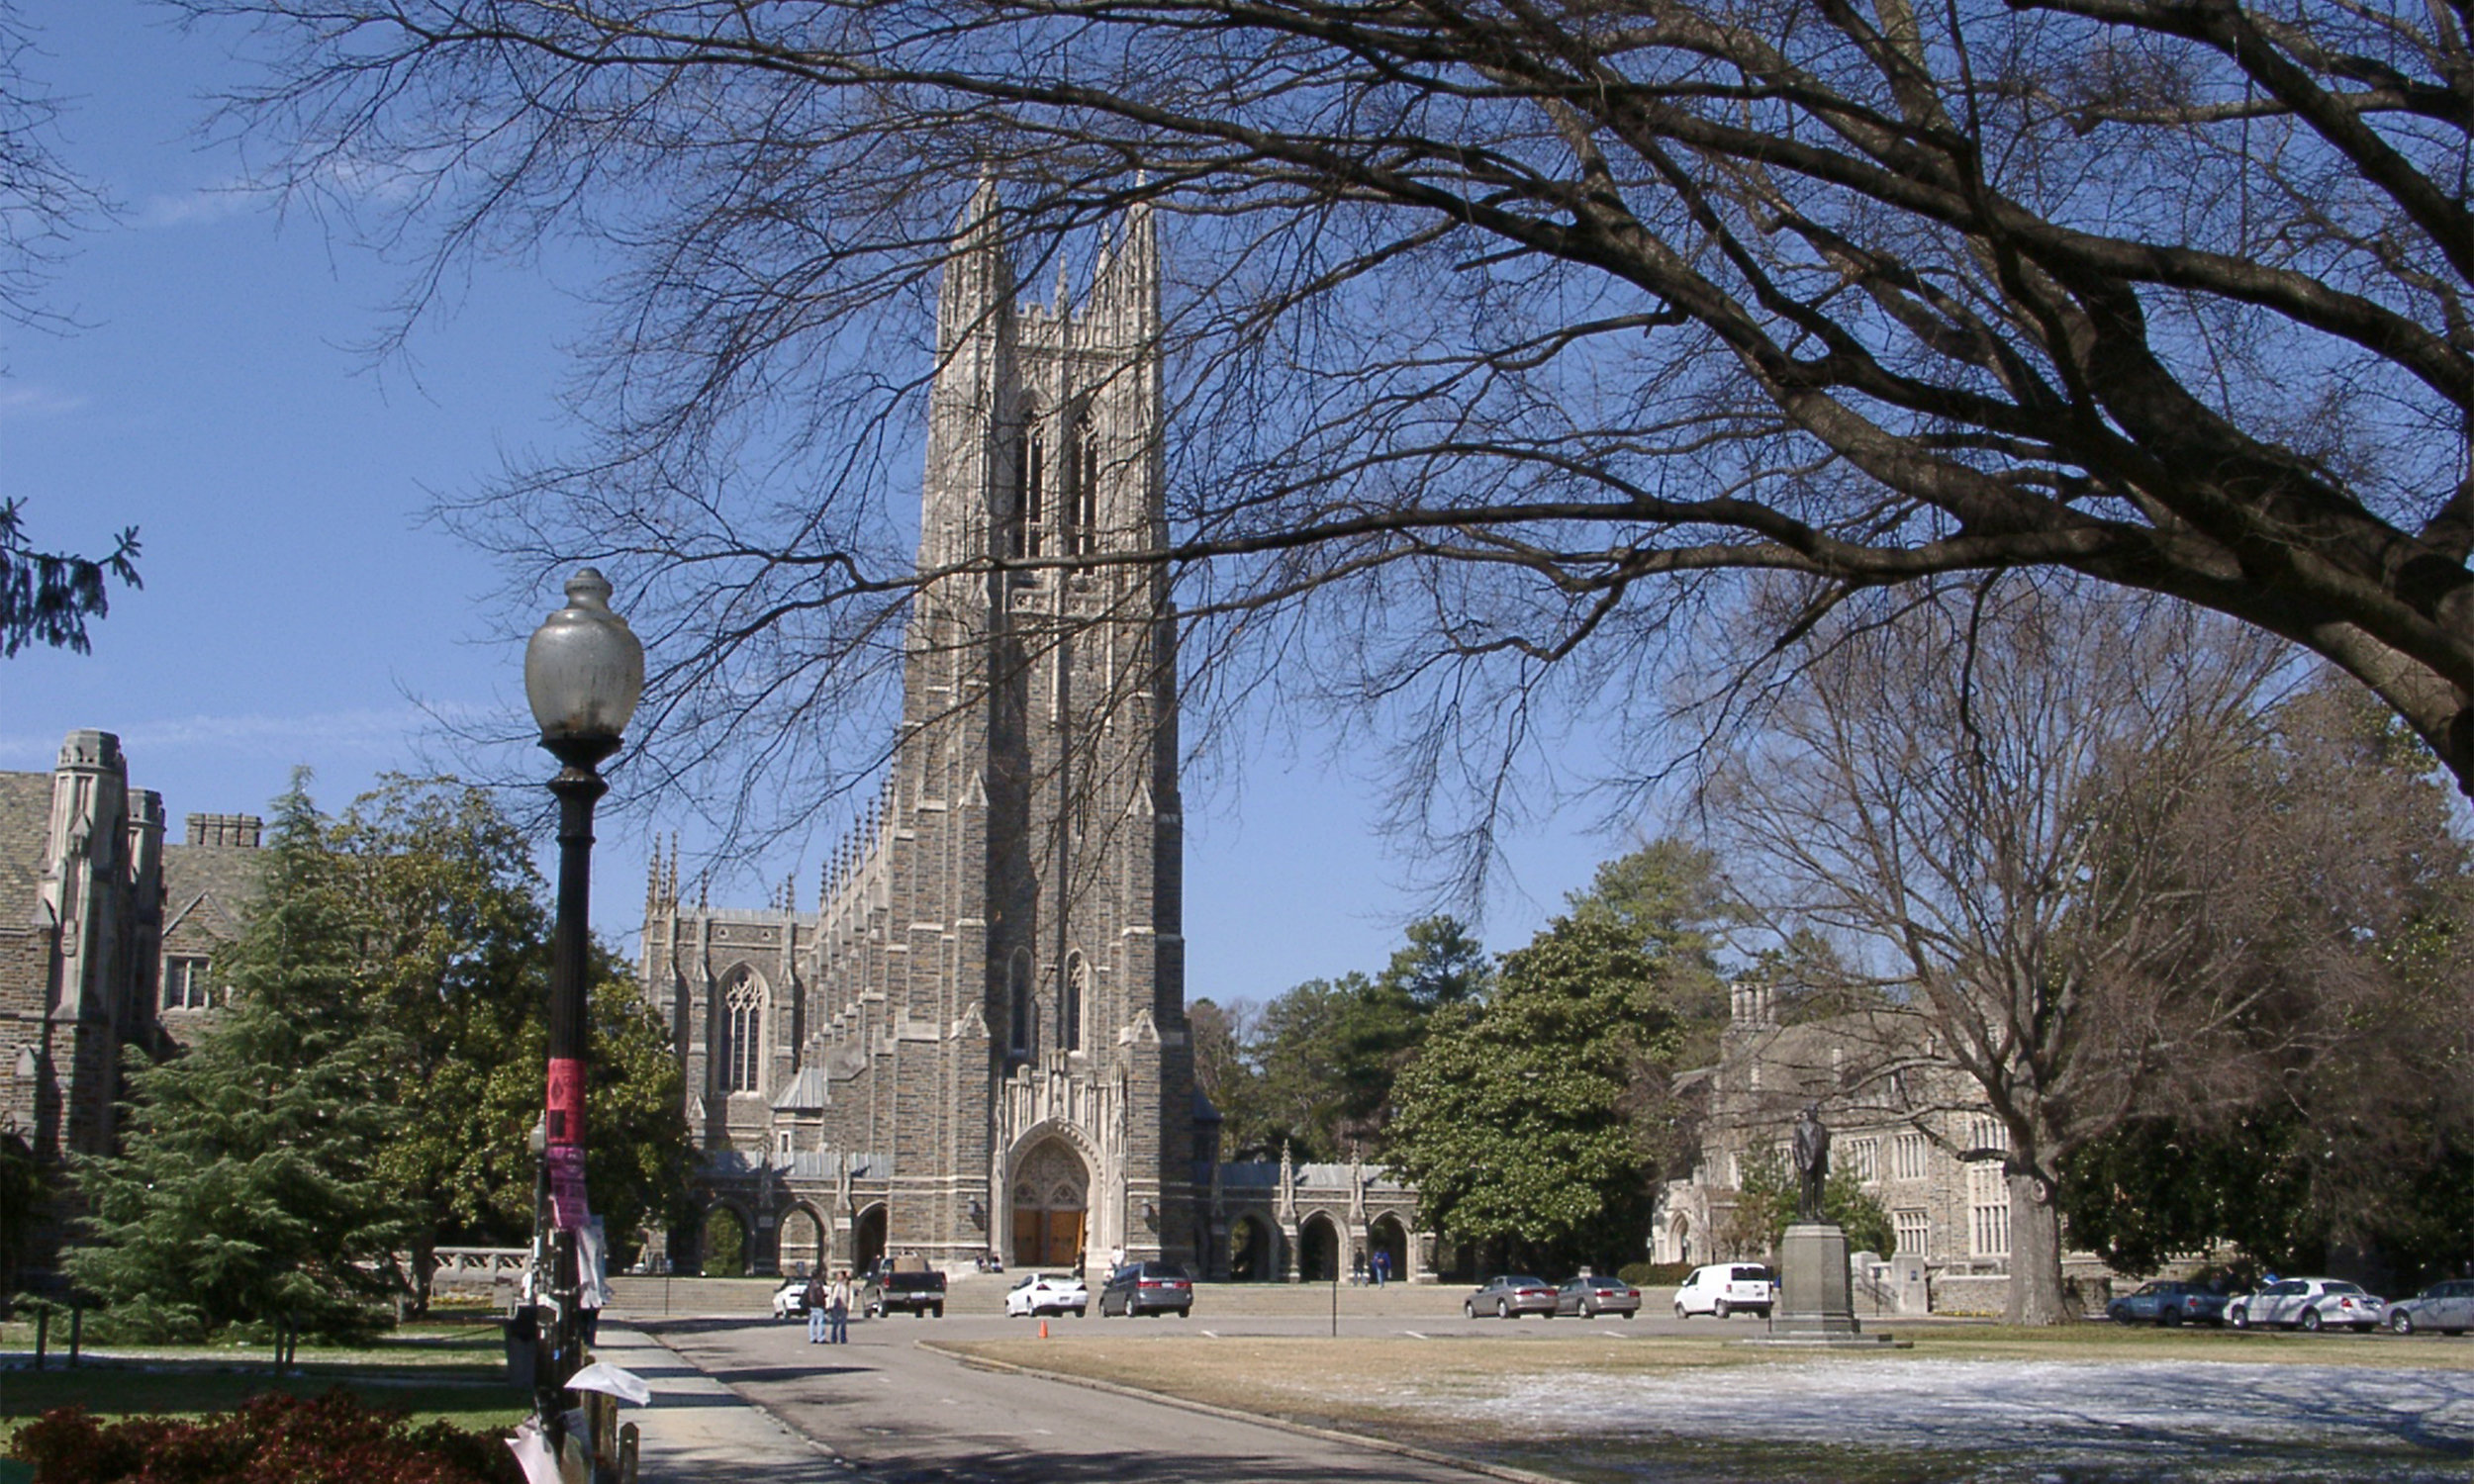 Duke University   (Multiple Projects)   Project Future Changes in Parking Supply  Analyze Parking Occupancy Versus Permit Oversell Ratios  Recommend Accommodations for Projected New Parking Demand